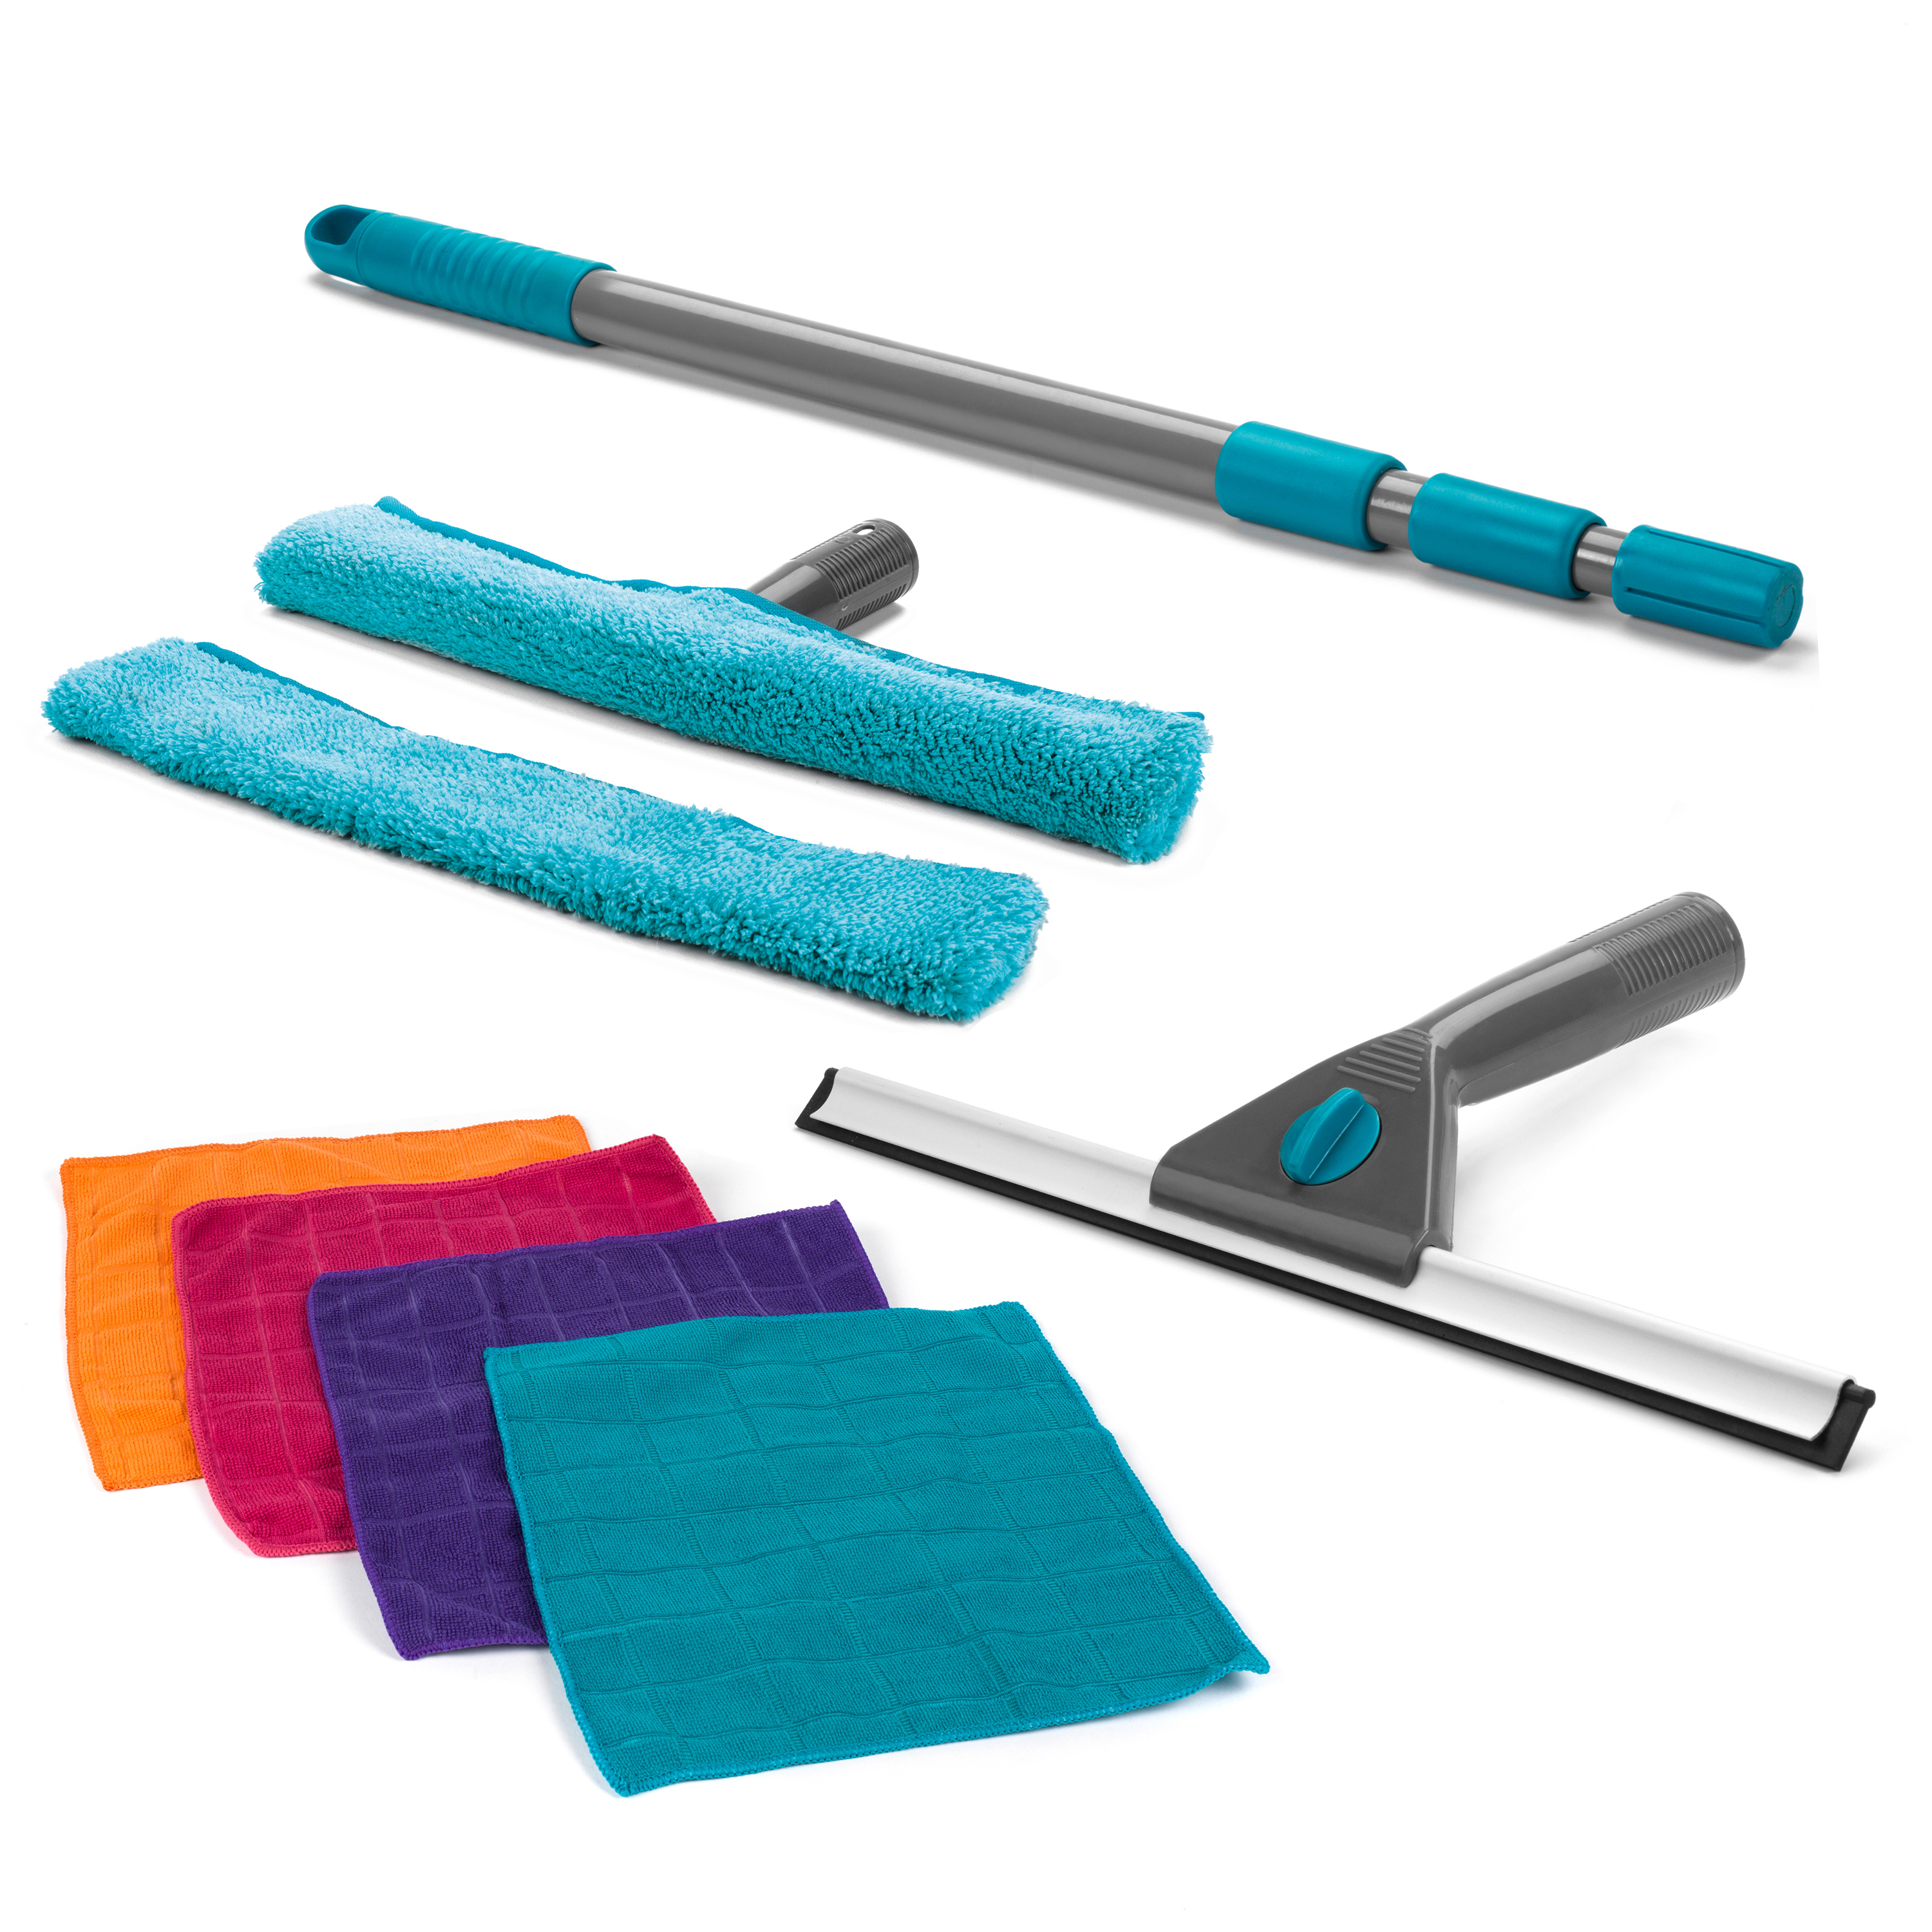 Beldray Combo 3392 Microfibre Large Window Cleaning Set With Duster Cloths 9 Piece